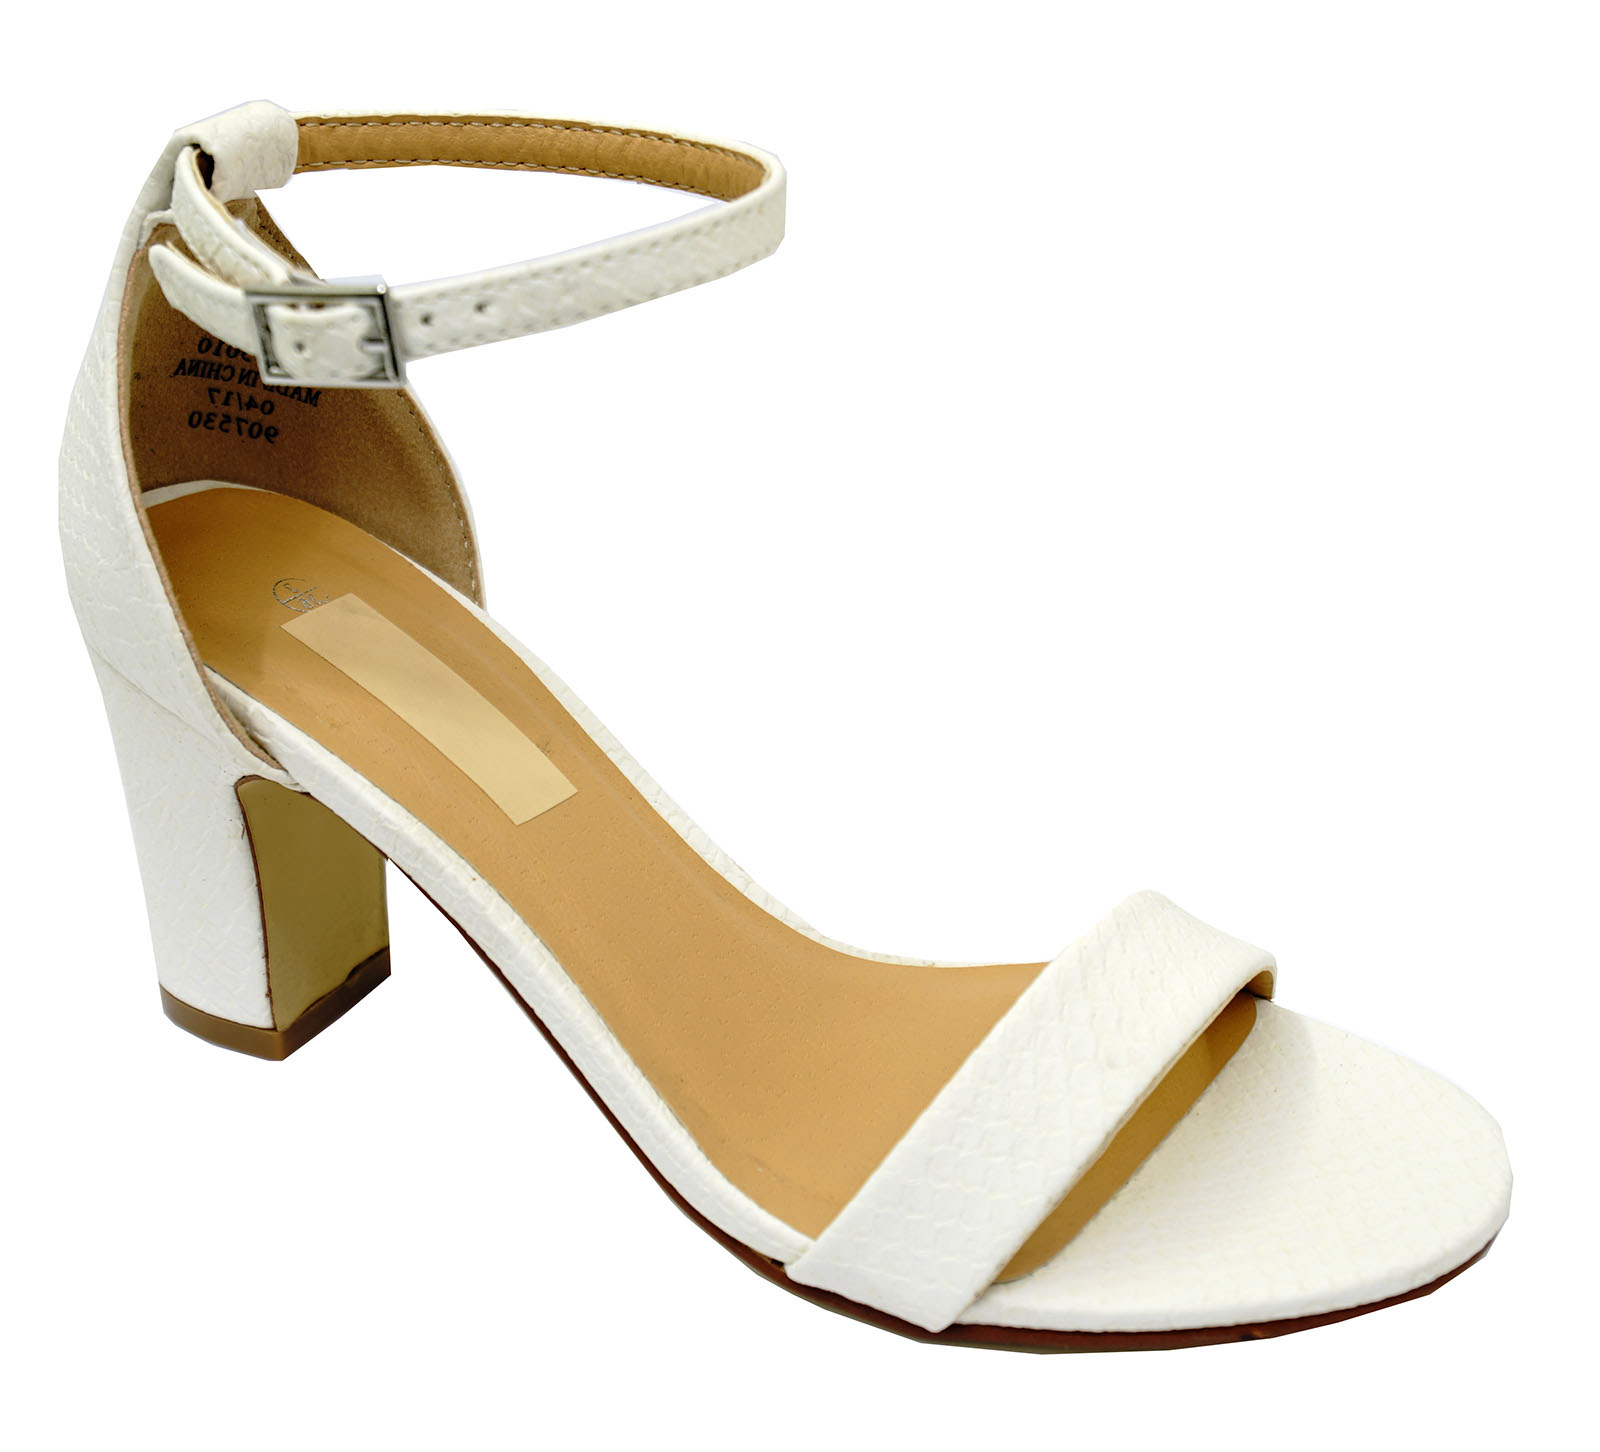 LADIES-WHITE-ANKLE-STRAP-BLOCK-HEEL-PEEPTOE-SANDALS-HOLIDAY-COMFY-SHOES-UK-3-8 thumbnail 19